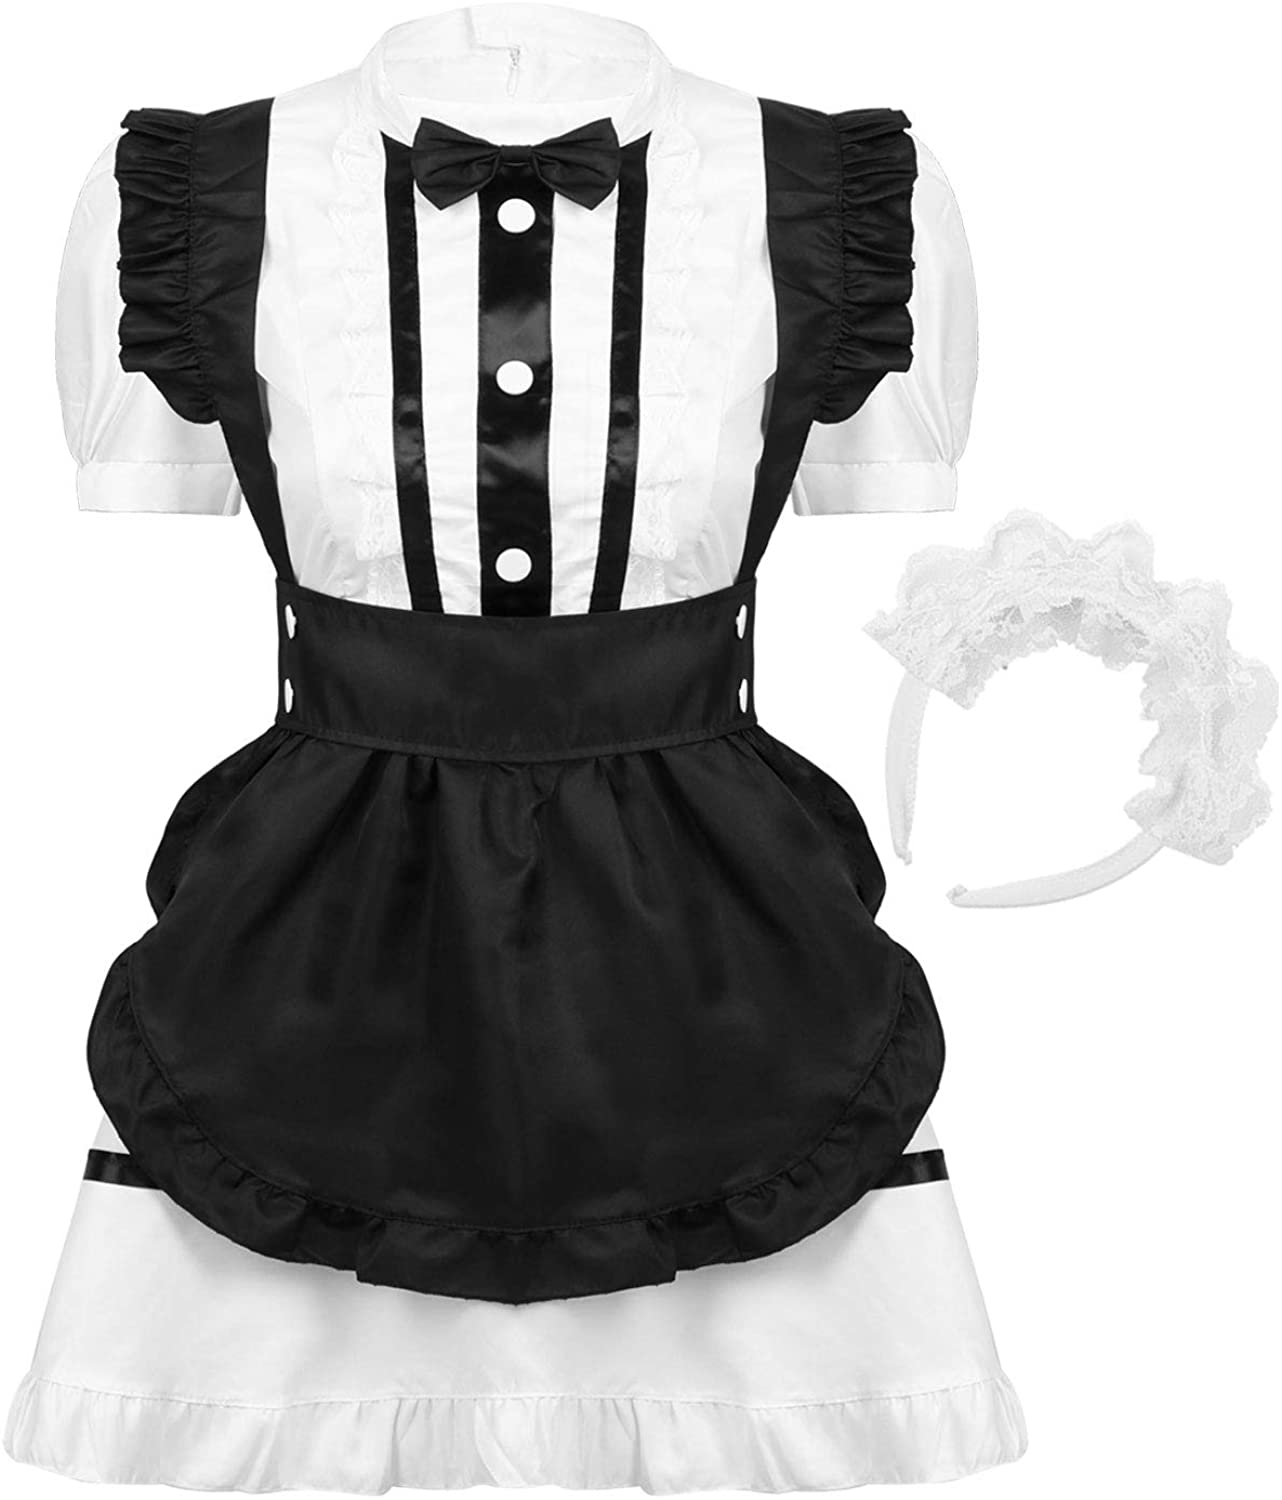 MSemis Woman's Anime French Maid Halloween Costume Anime Cosplay Outfit School Girl Fancy Dress